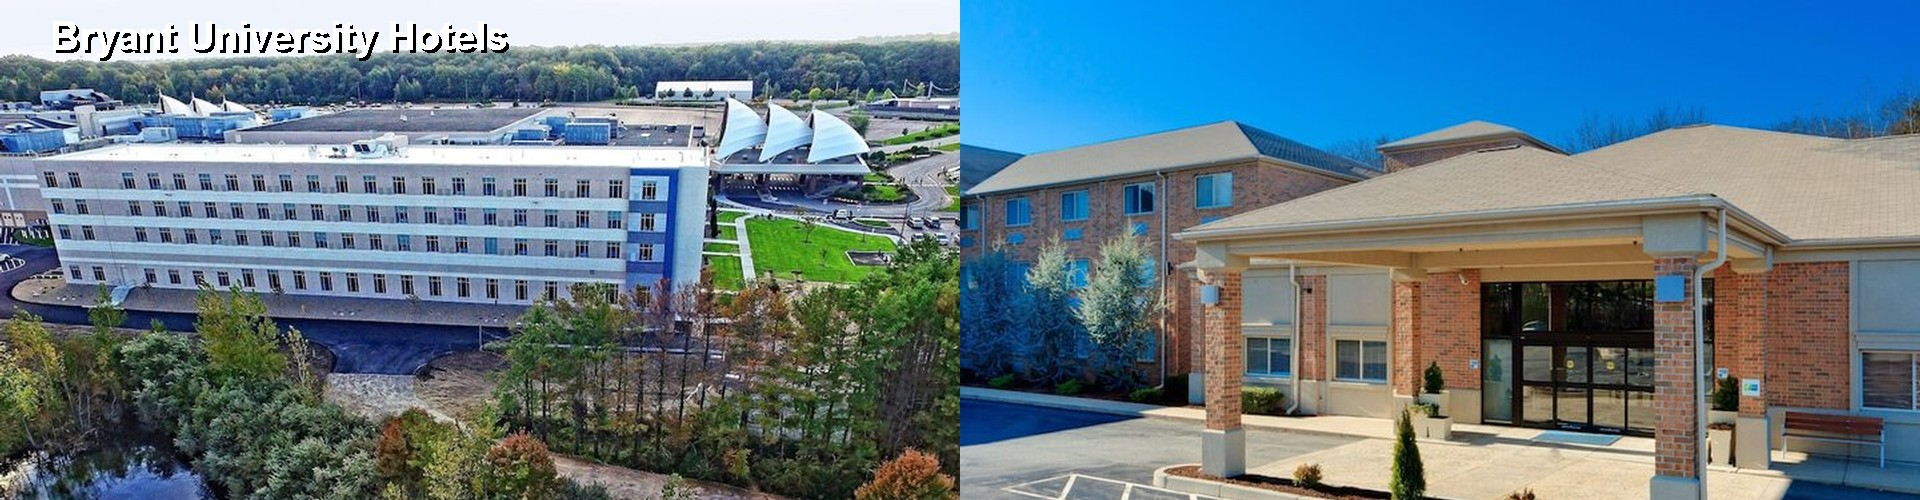 5 Best Hotels Near Bryant University